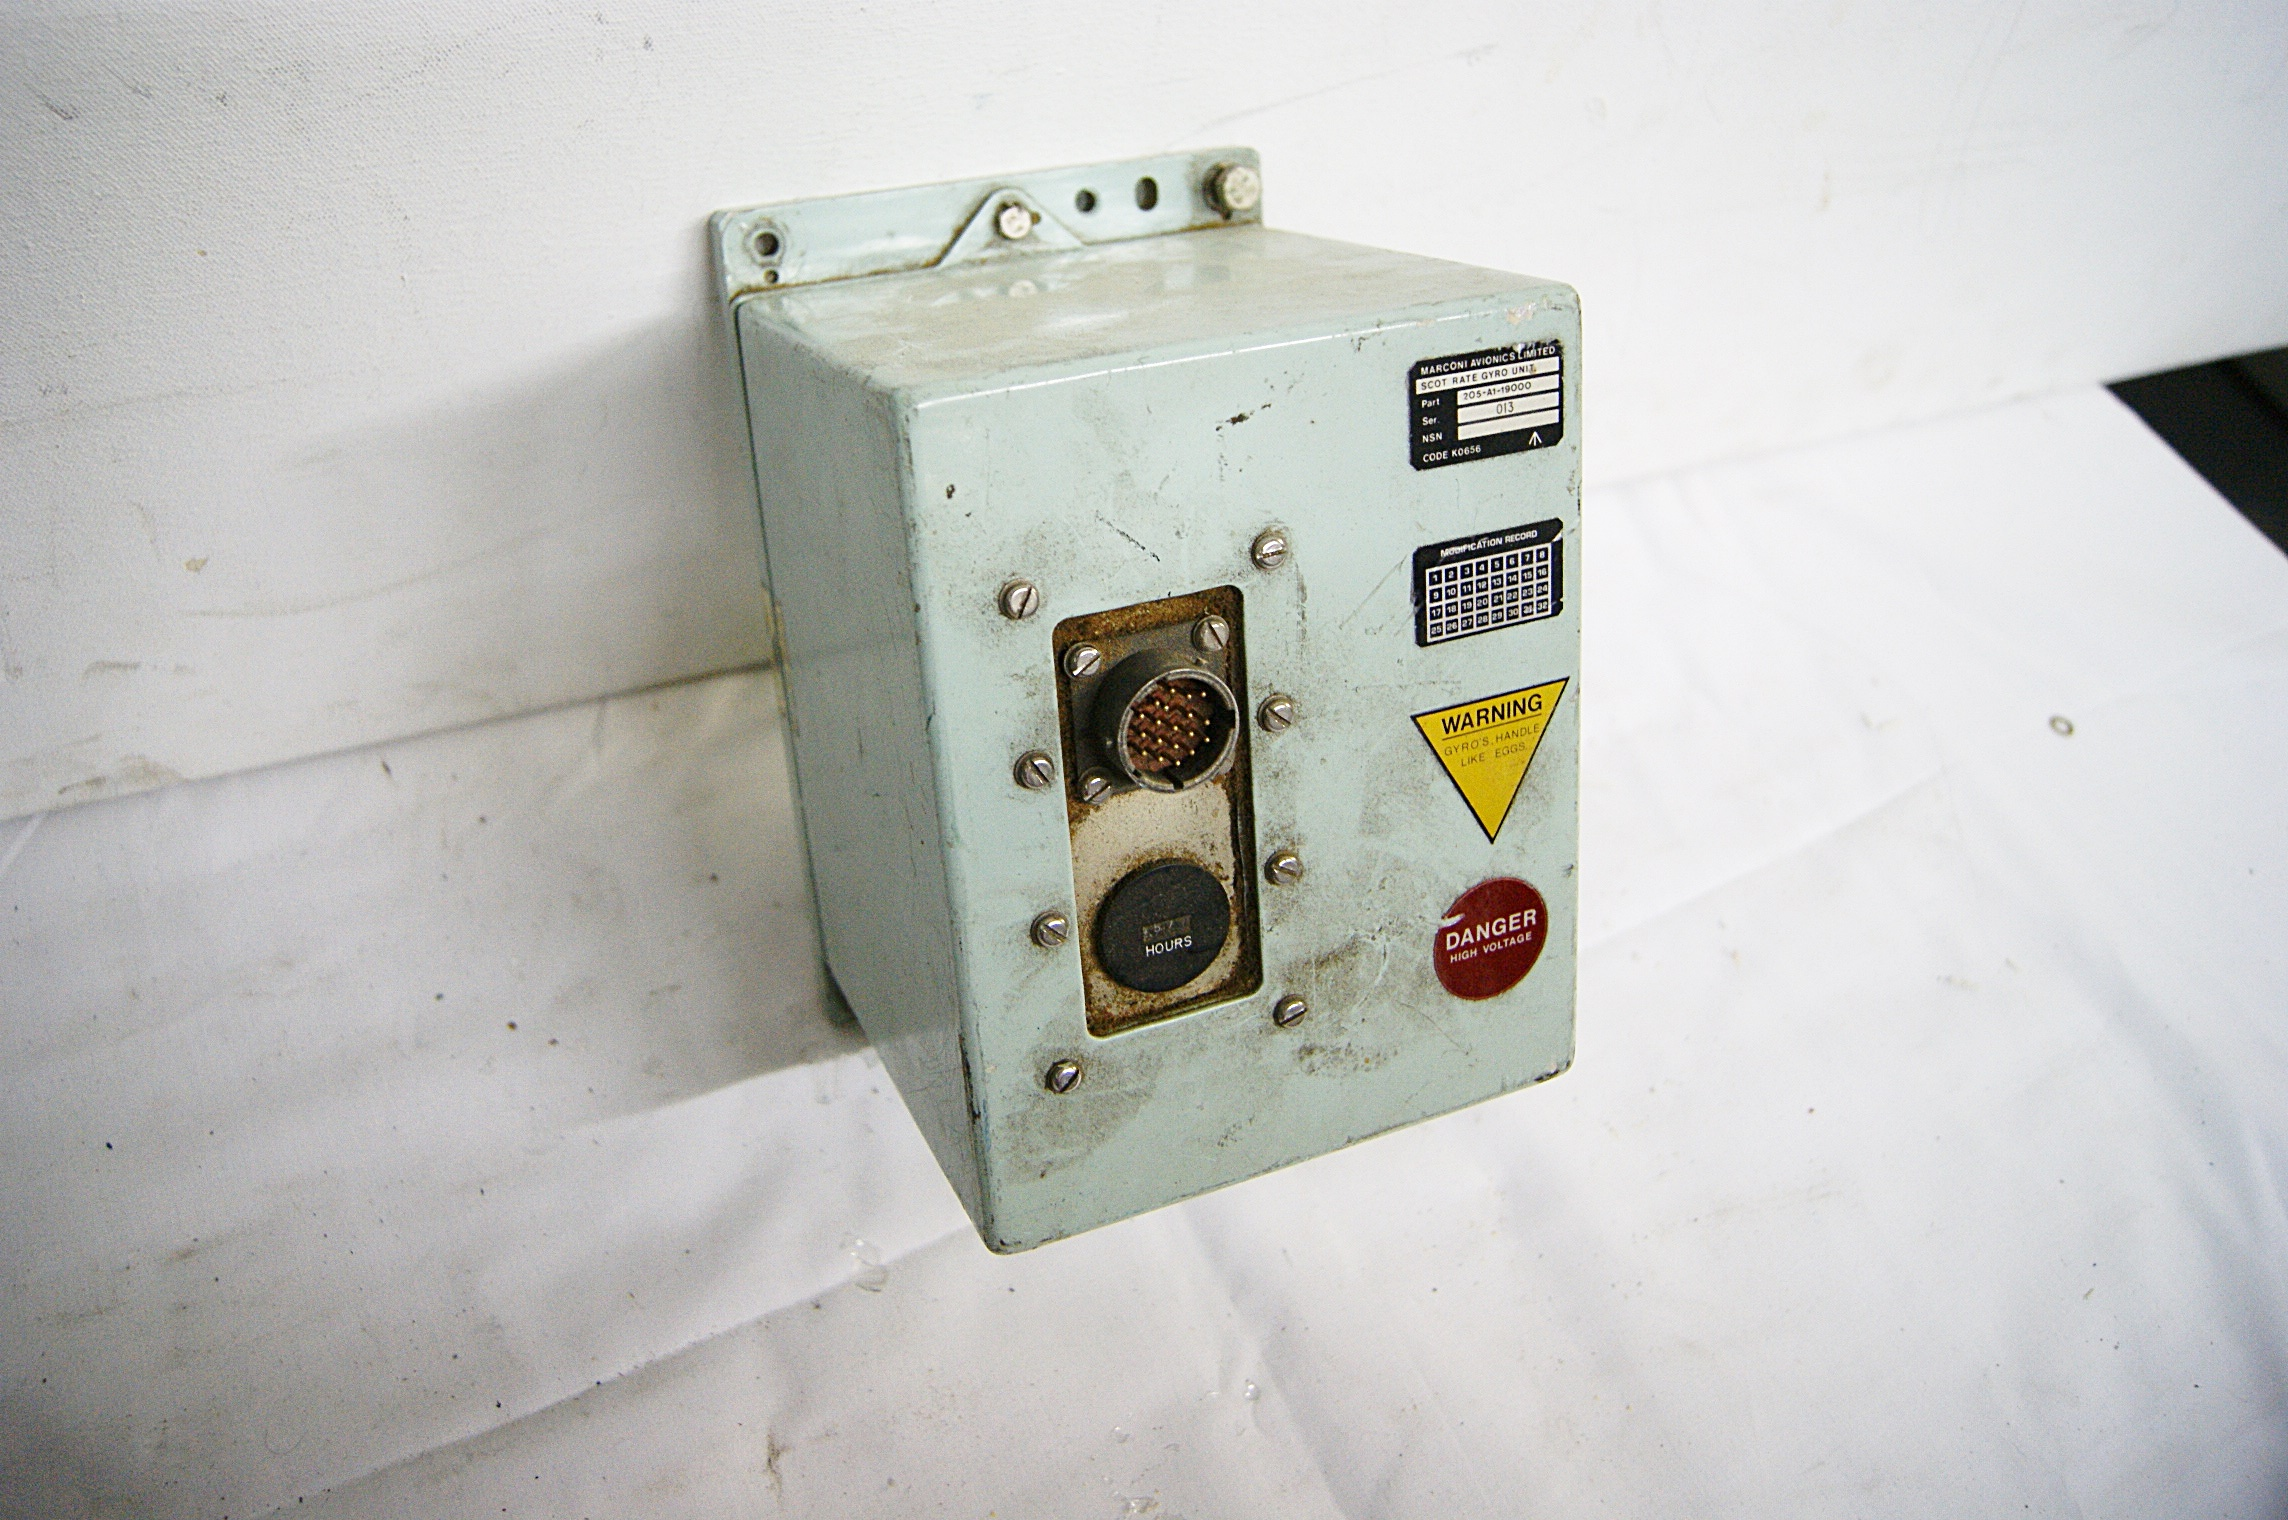 6810150 Submarine Control Room Fuse Box ( H 20cm x 13 x 14 ) - Stockyard  Prop and Backdrop Hire